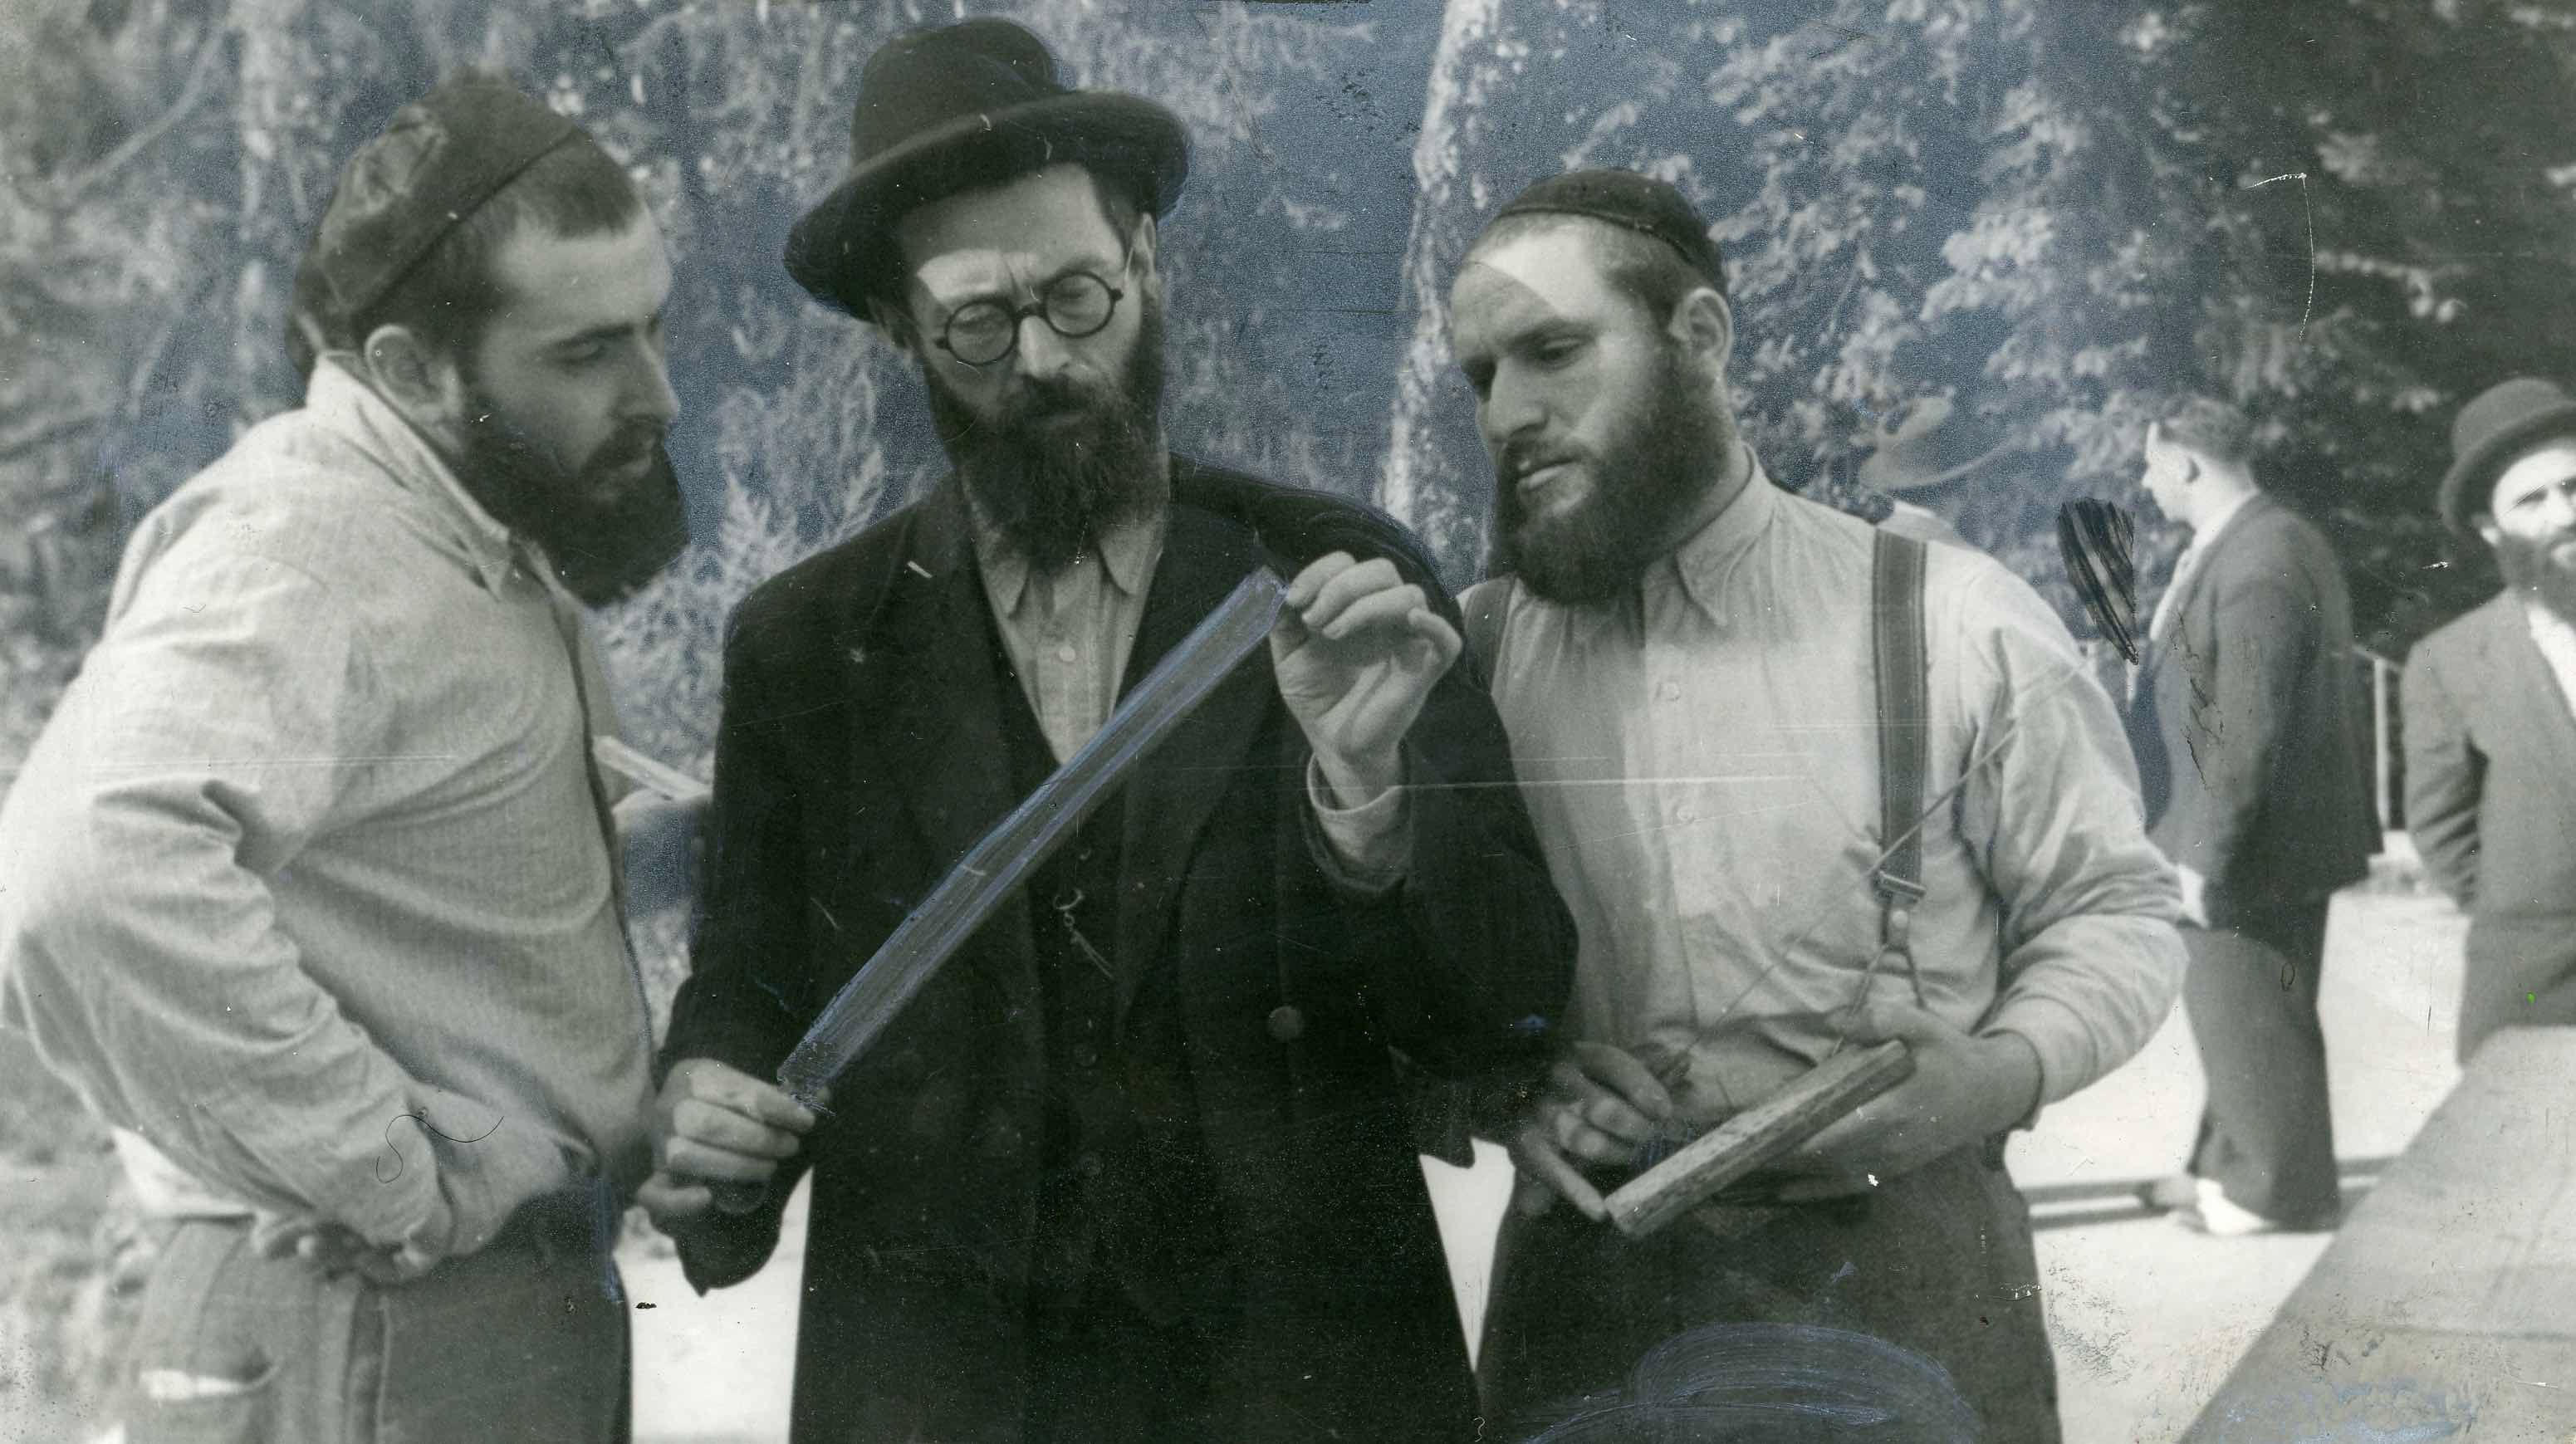 In 1948, the mahgiekh (kashrut supervisor)Reb Berl Yankl looks over the sharp slaughter knife to ascertain that it has no flaw.